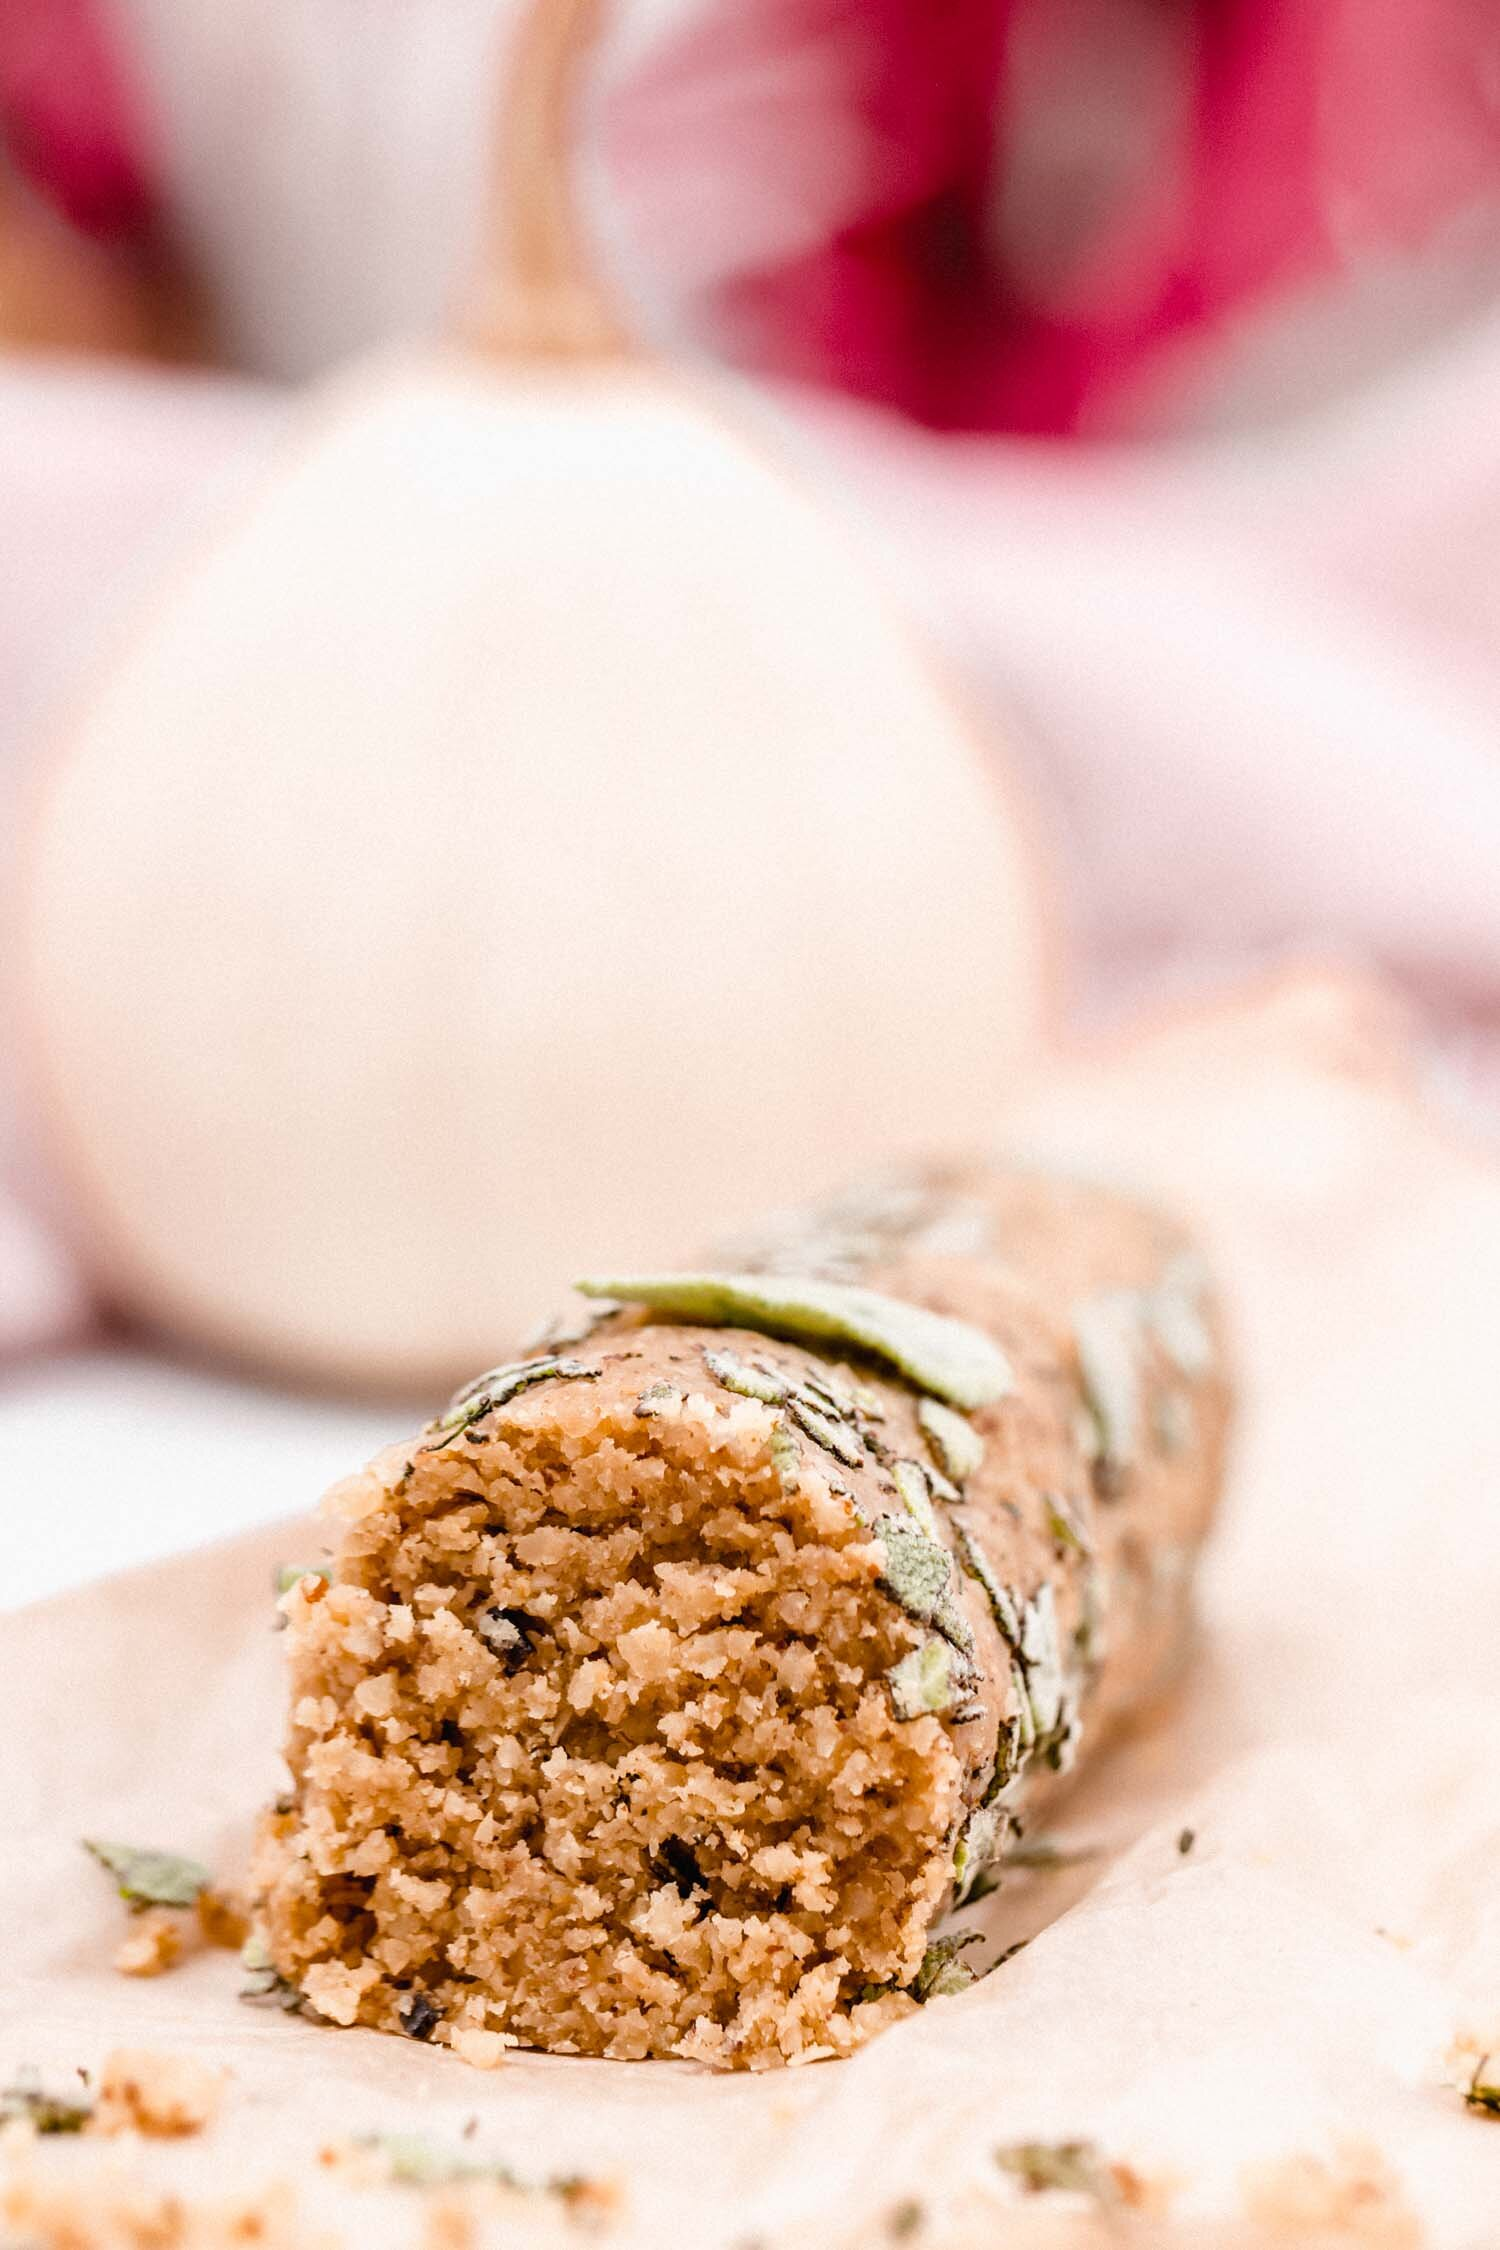 Easy Brazil Nut Vegan Cheese Log only requires about 10 minutes of hands-on time and is deliciously flavored with brazil nuts rosemary, lemon, and kalamata olives. #vegancheese #dairyfree #cheeselog #glutenfree #holidayfood #snack #appetizer #vegan #rosemary #brazilnut